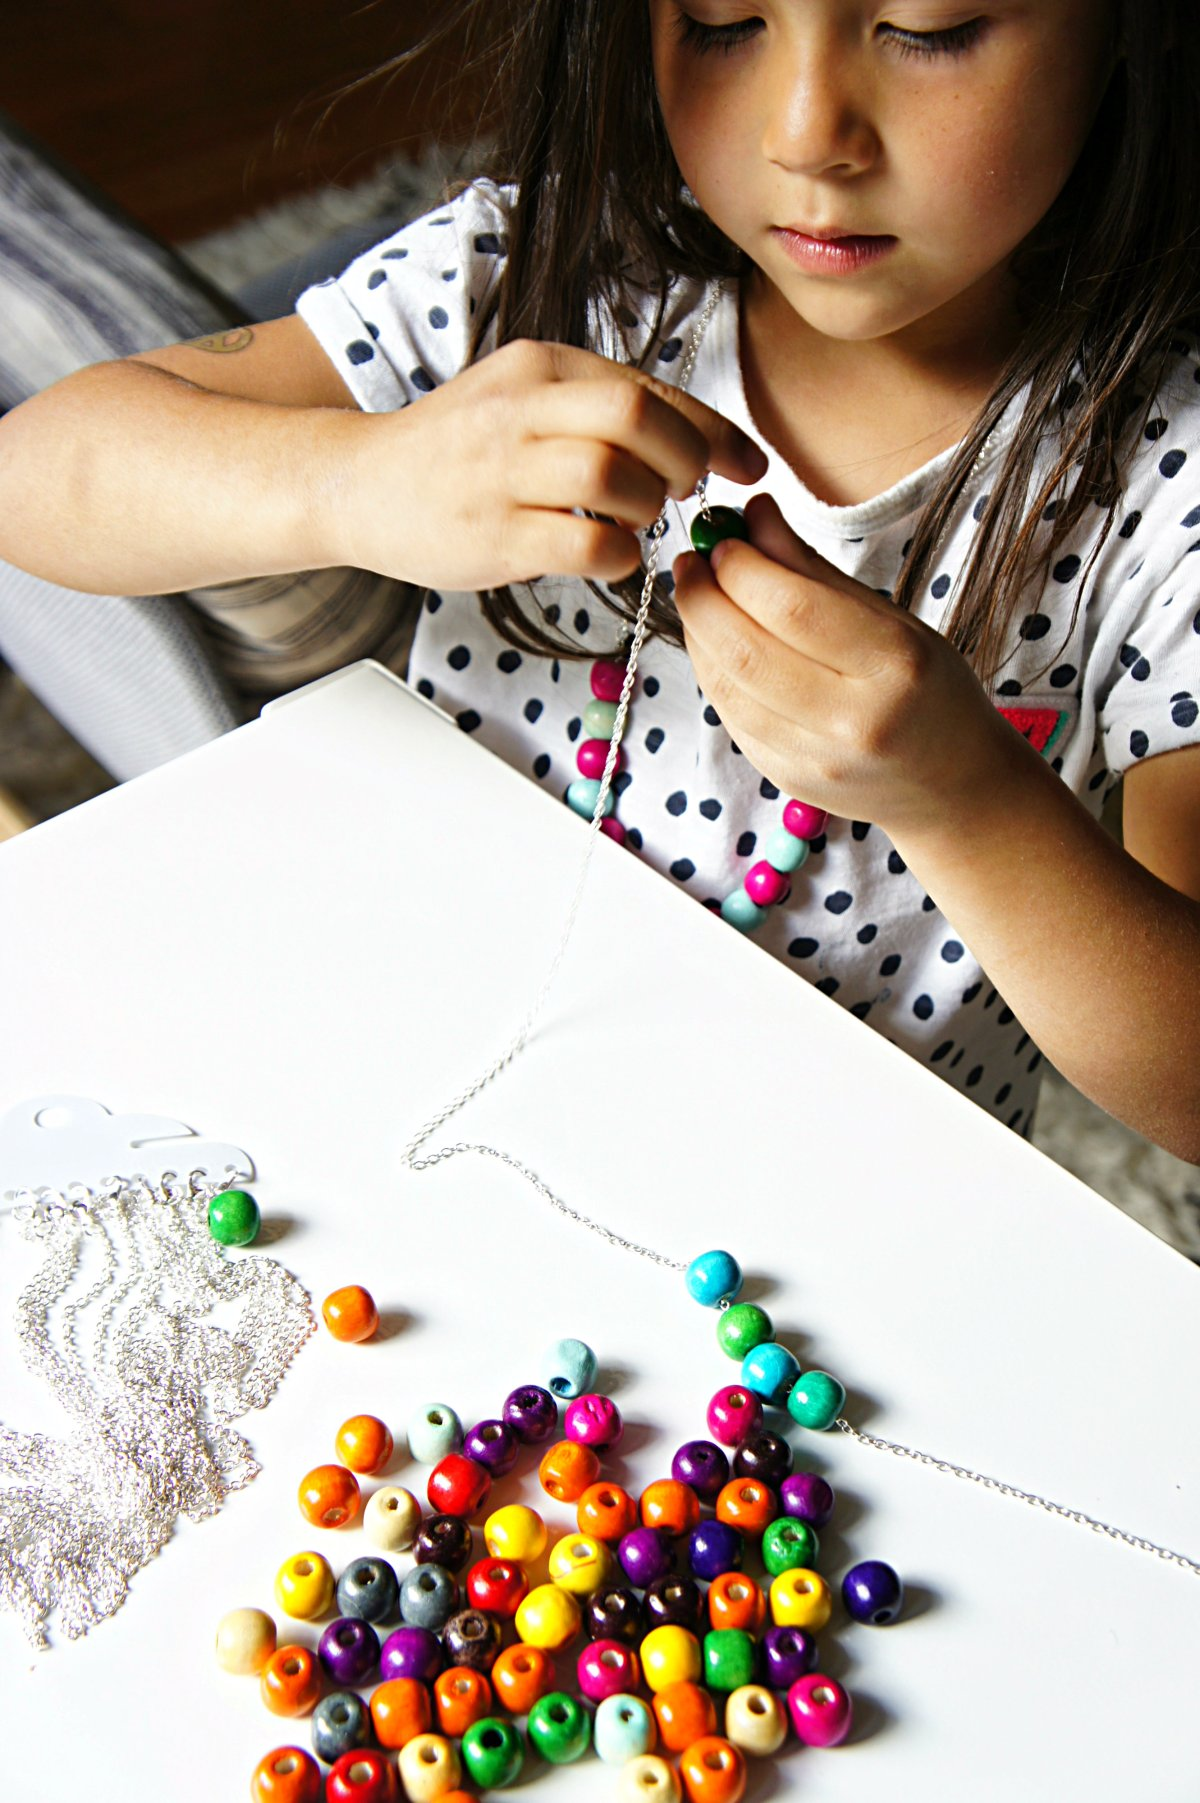 Fun DIY gumdrop bead necklace craft